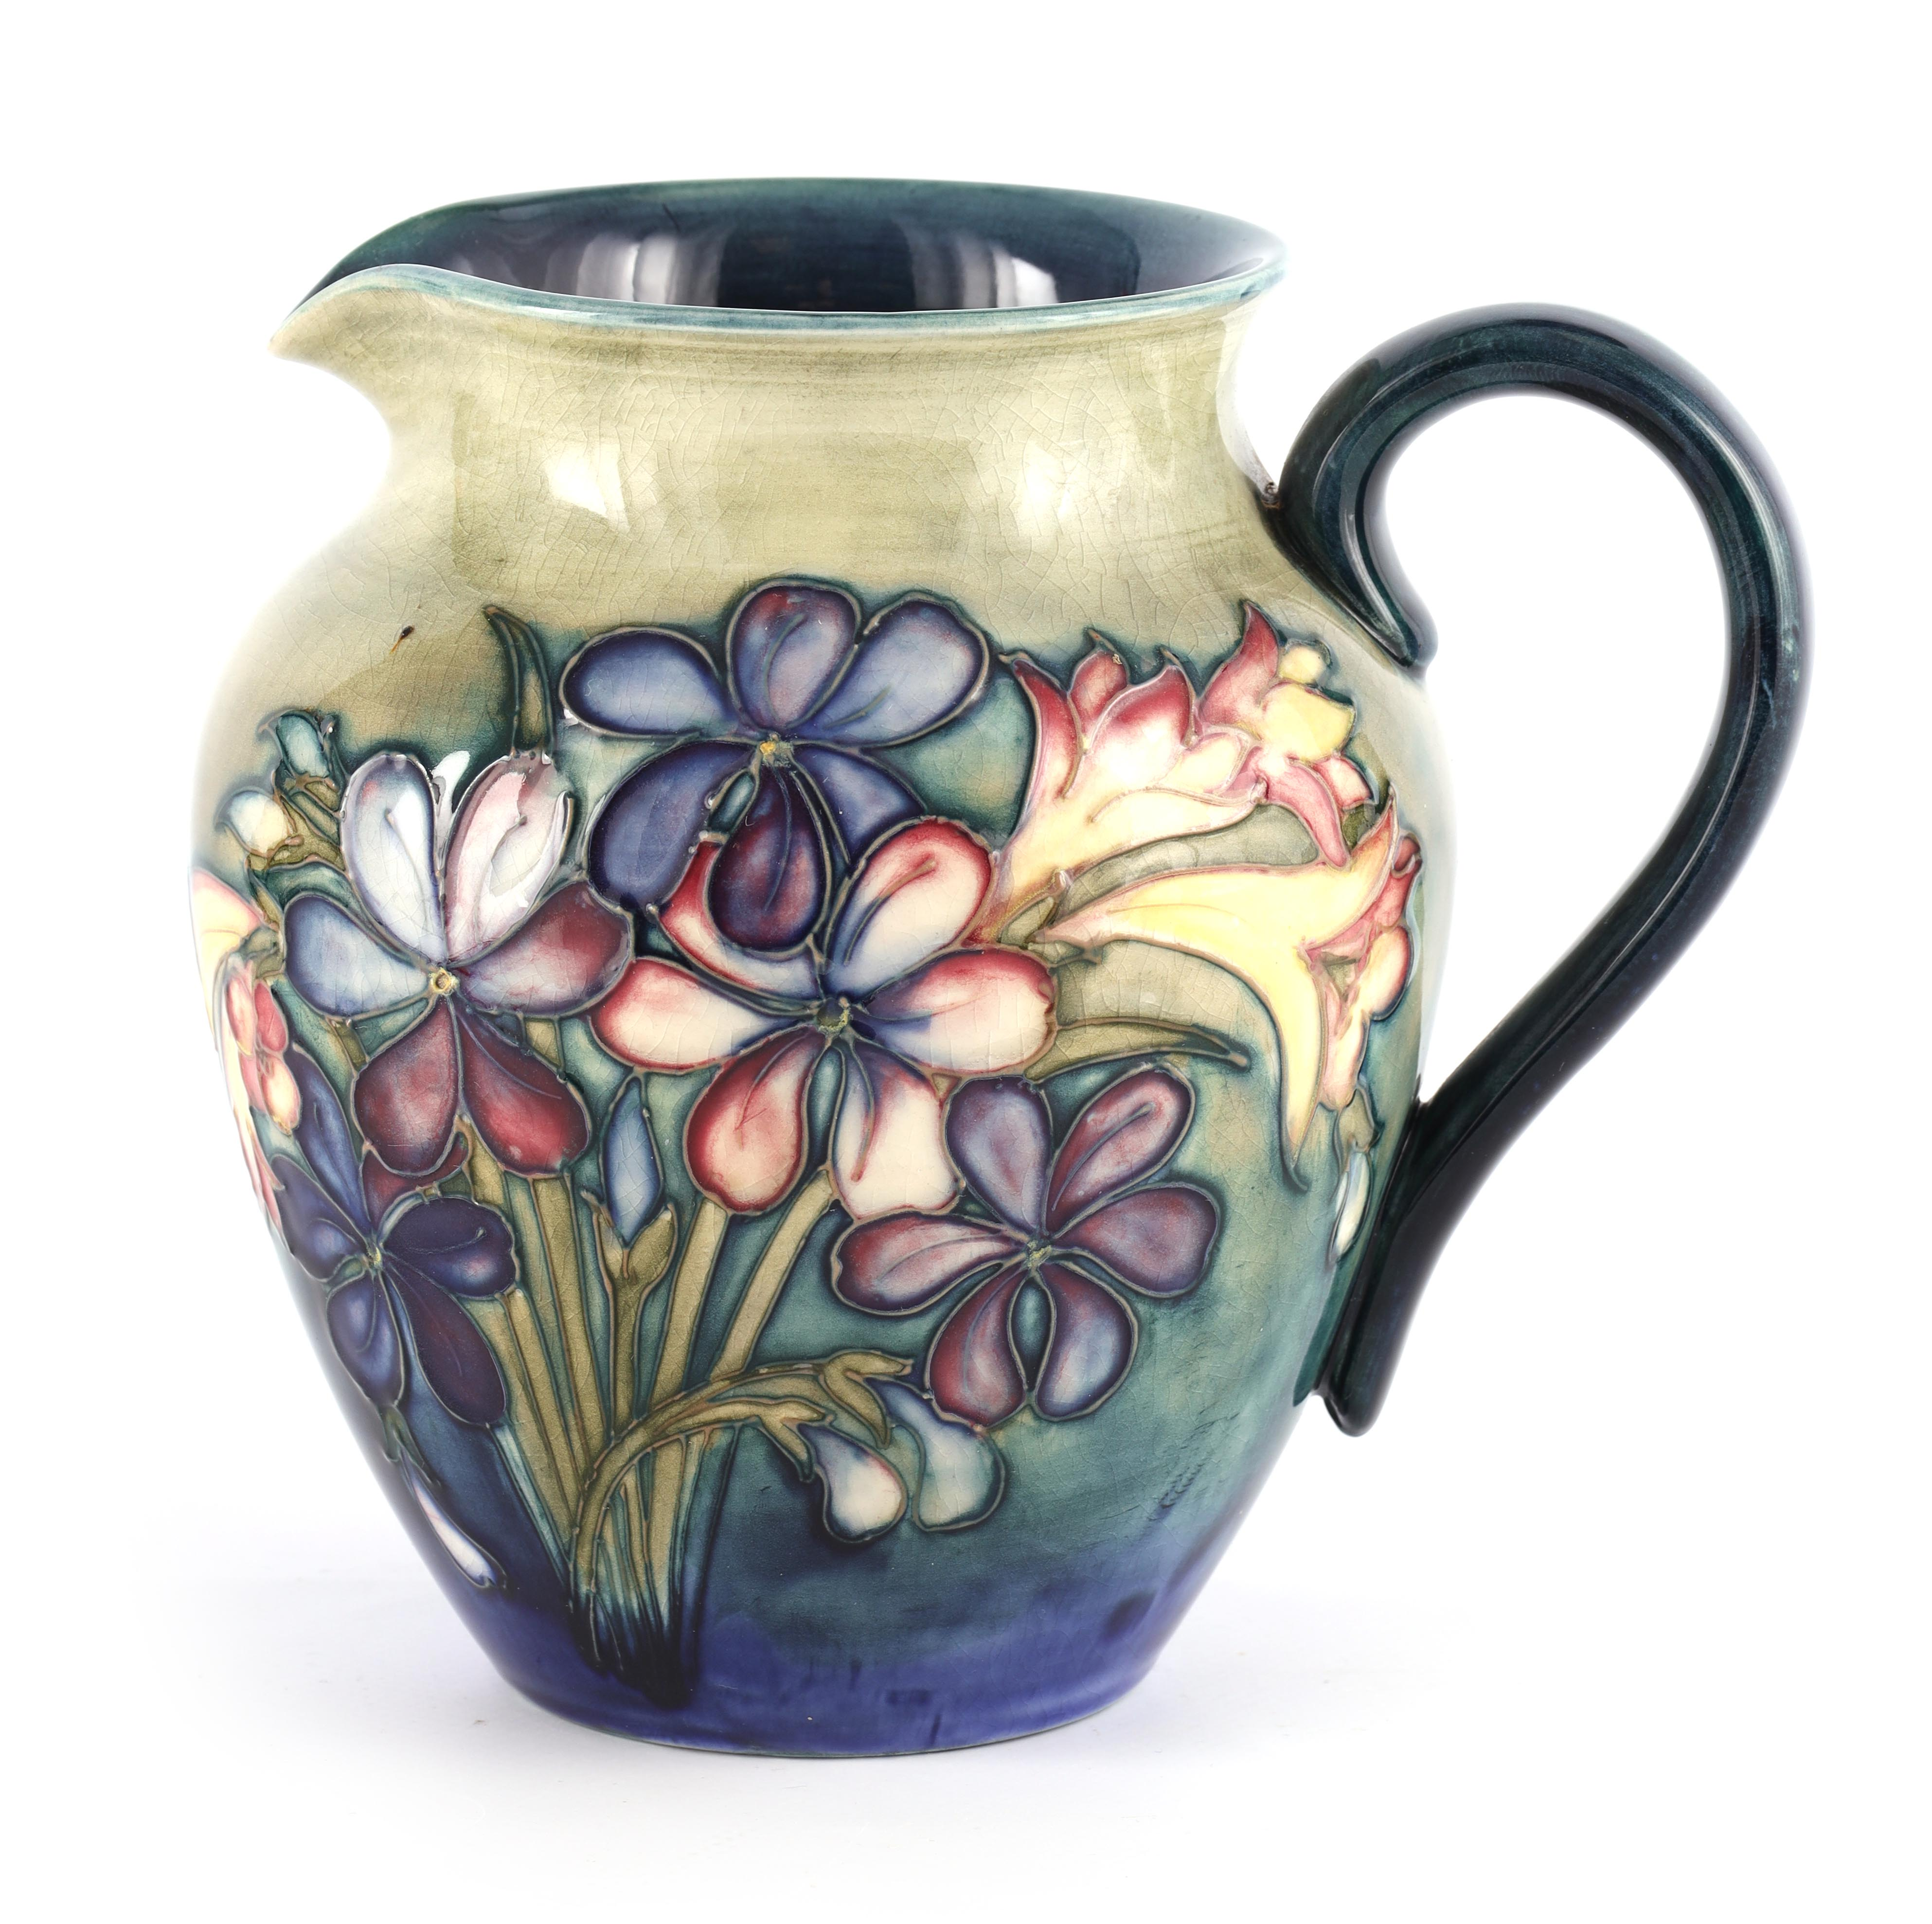 A MOORCROFT SHOULDERED TAPERING JUG tube lined and decorated in the spring flowers pattern on a